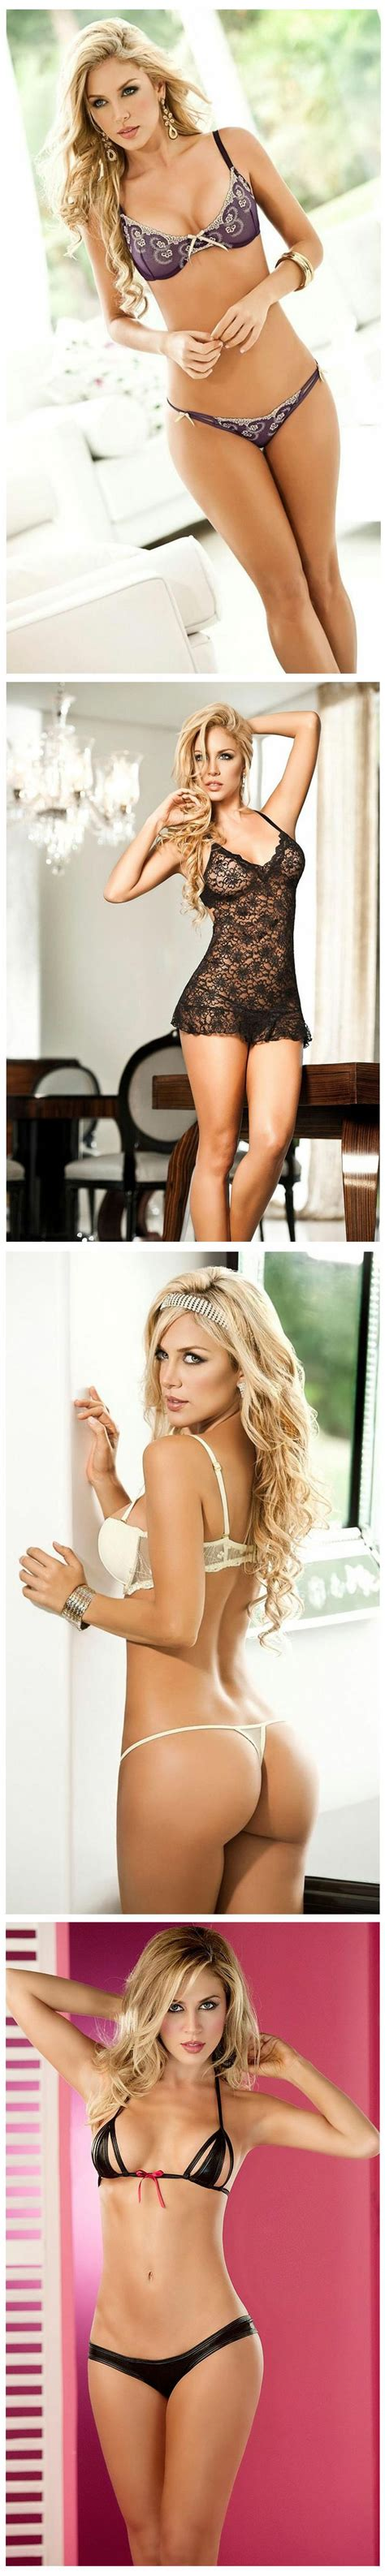 lina posada lingerie 177 best images about photography dresscode on pinterest